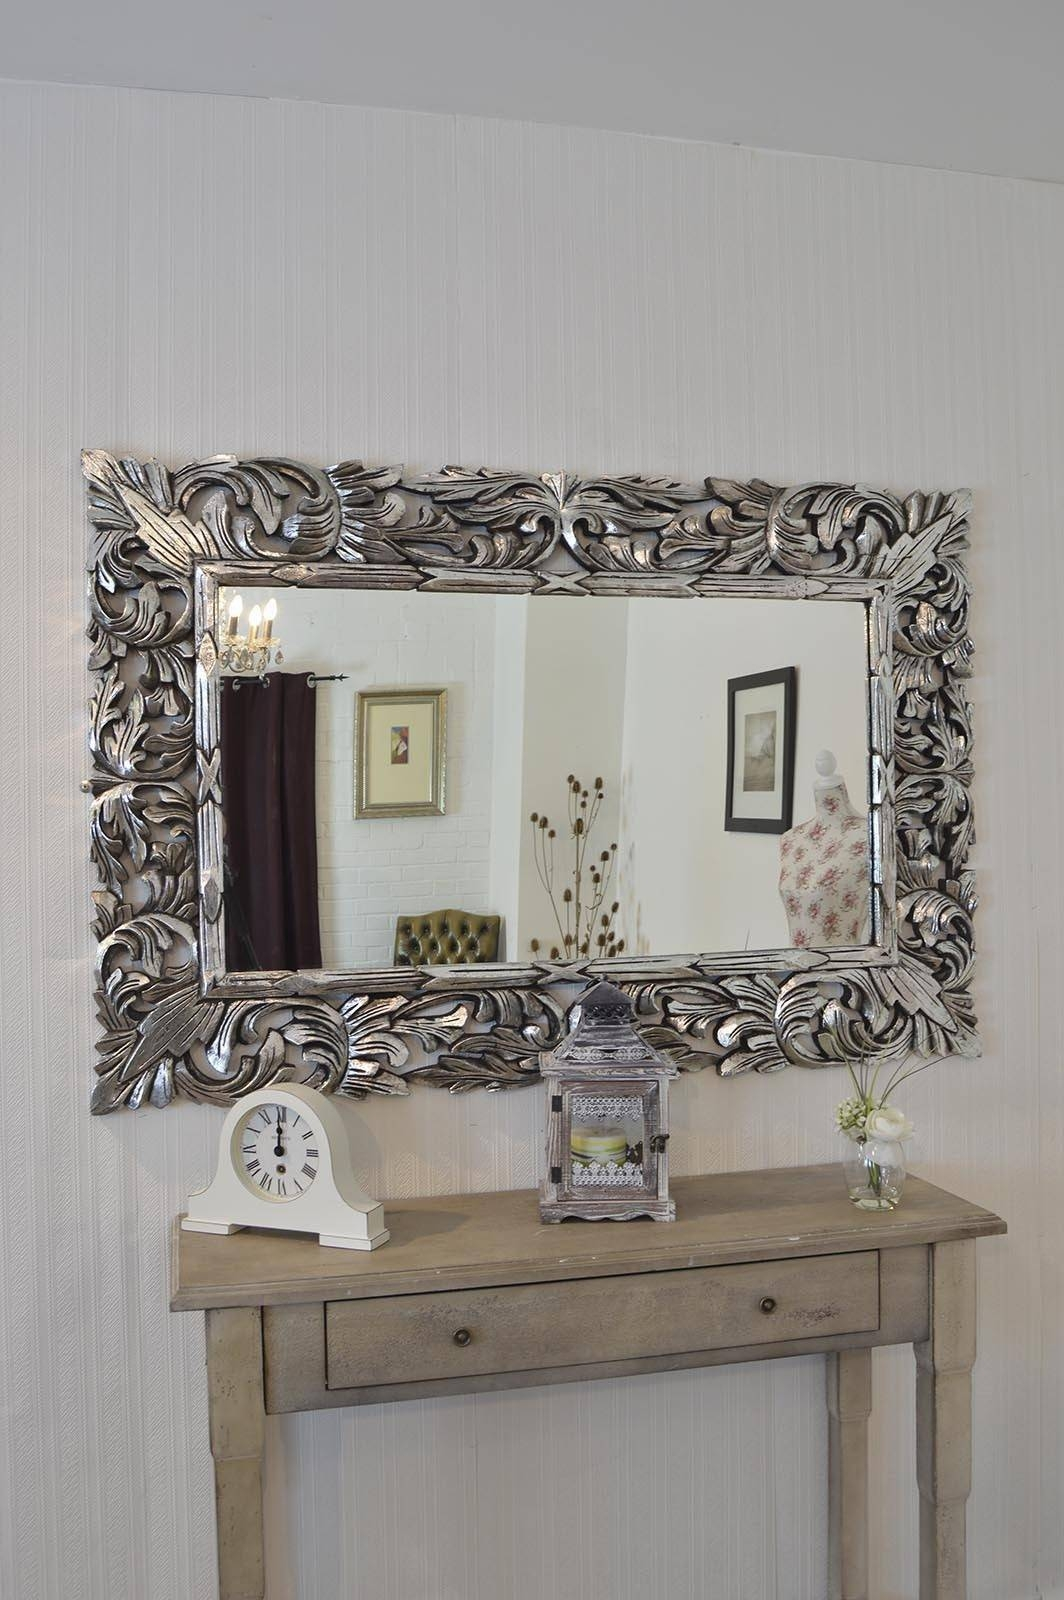 Popular Photo of Large Ornate Wall Mirrors